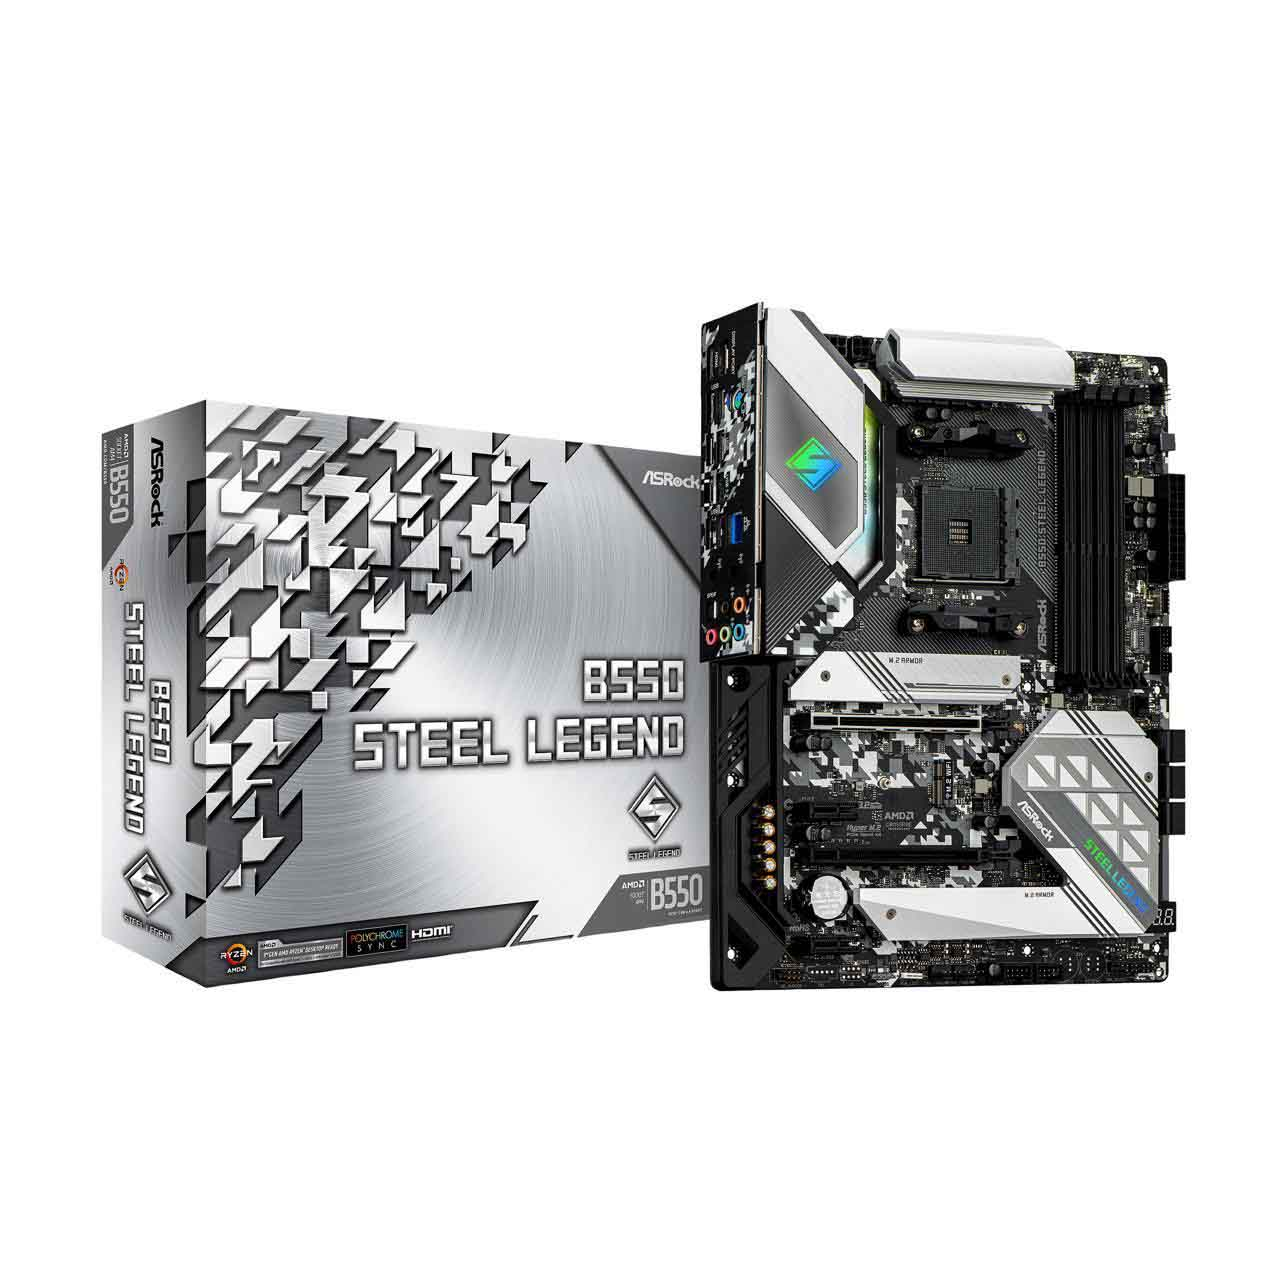 ASRock B550 STEEL LEGEND AM4 ATX AMD Motherboard